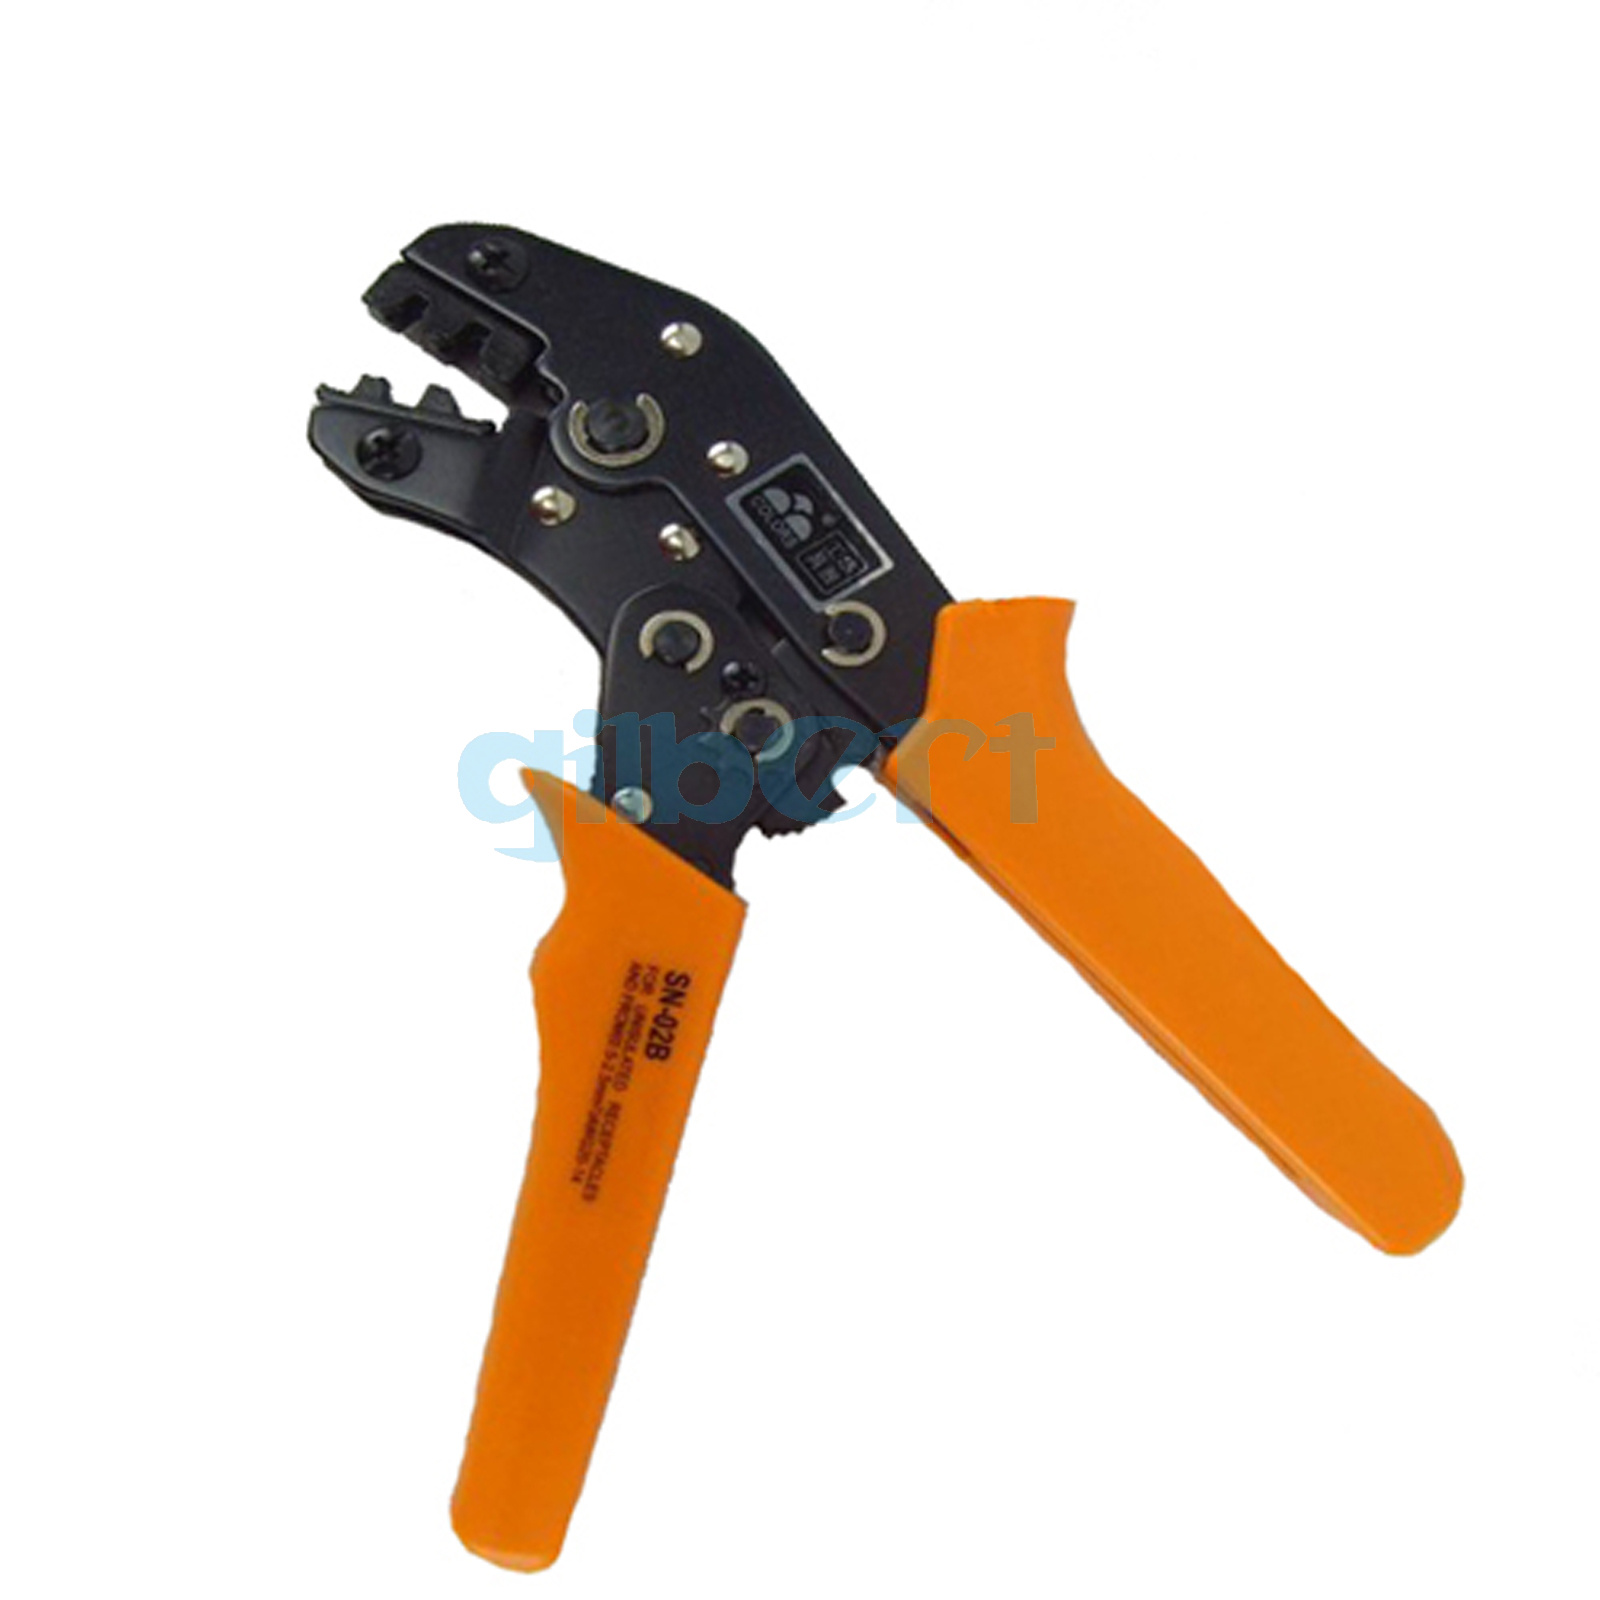 US HSC816-4 Crimping Pliers 4-16mm² Insulated Wire End Sleeve Ratchet Clamp Tool